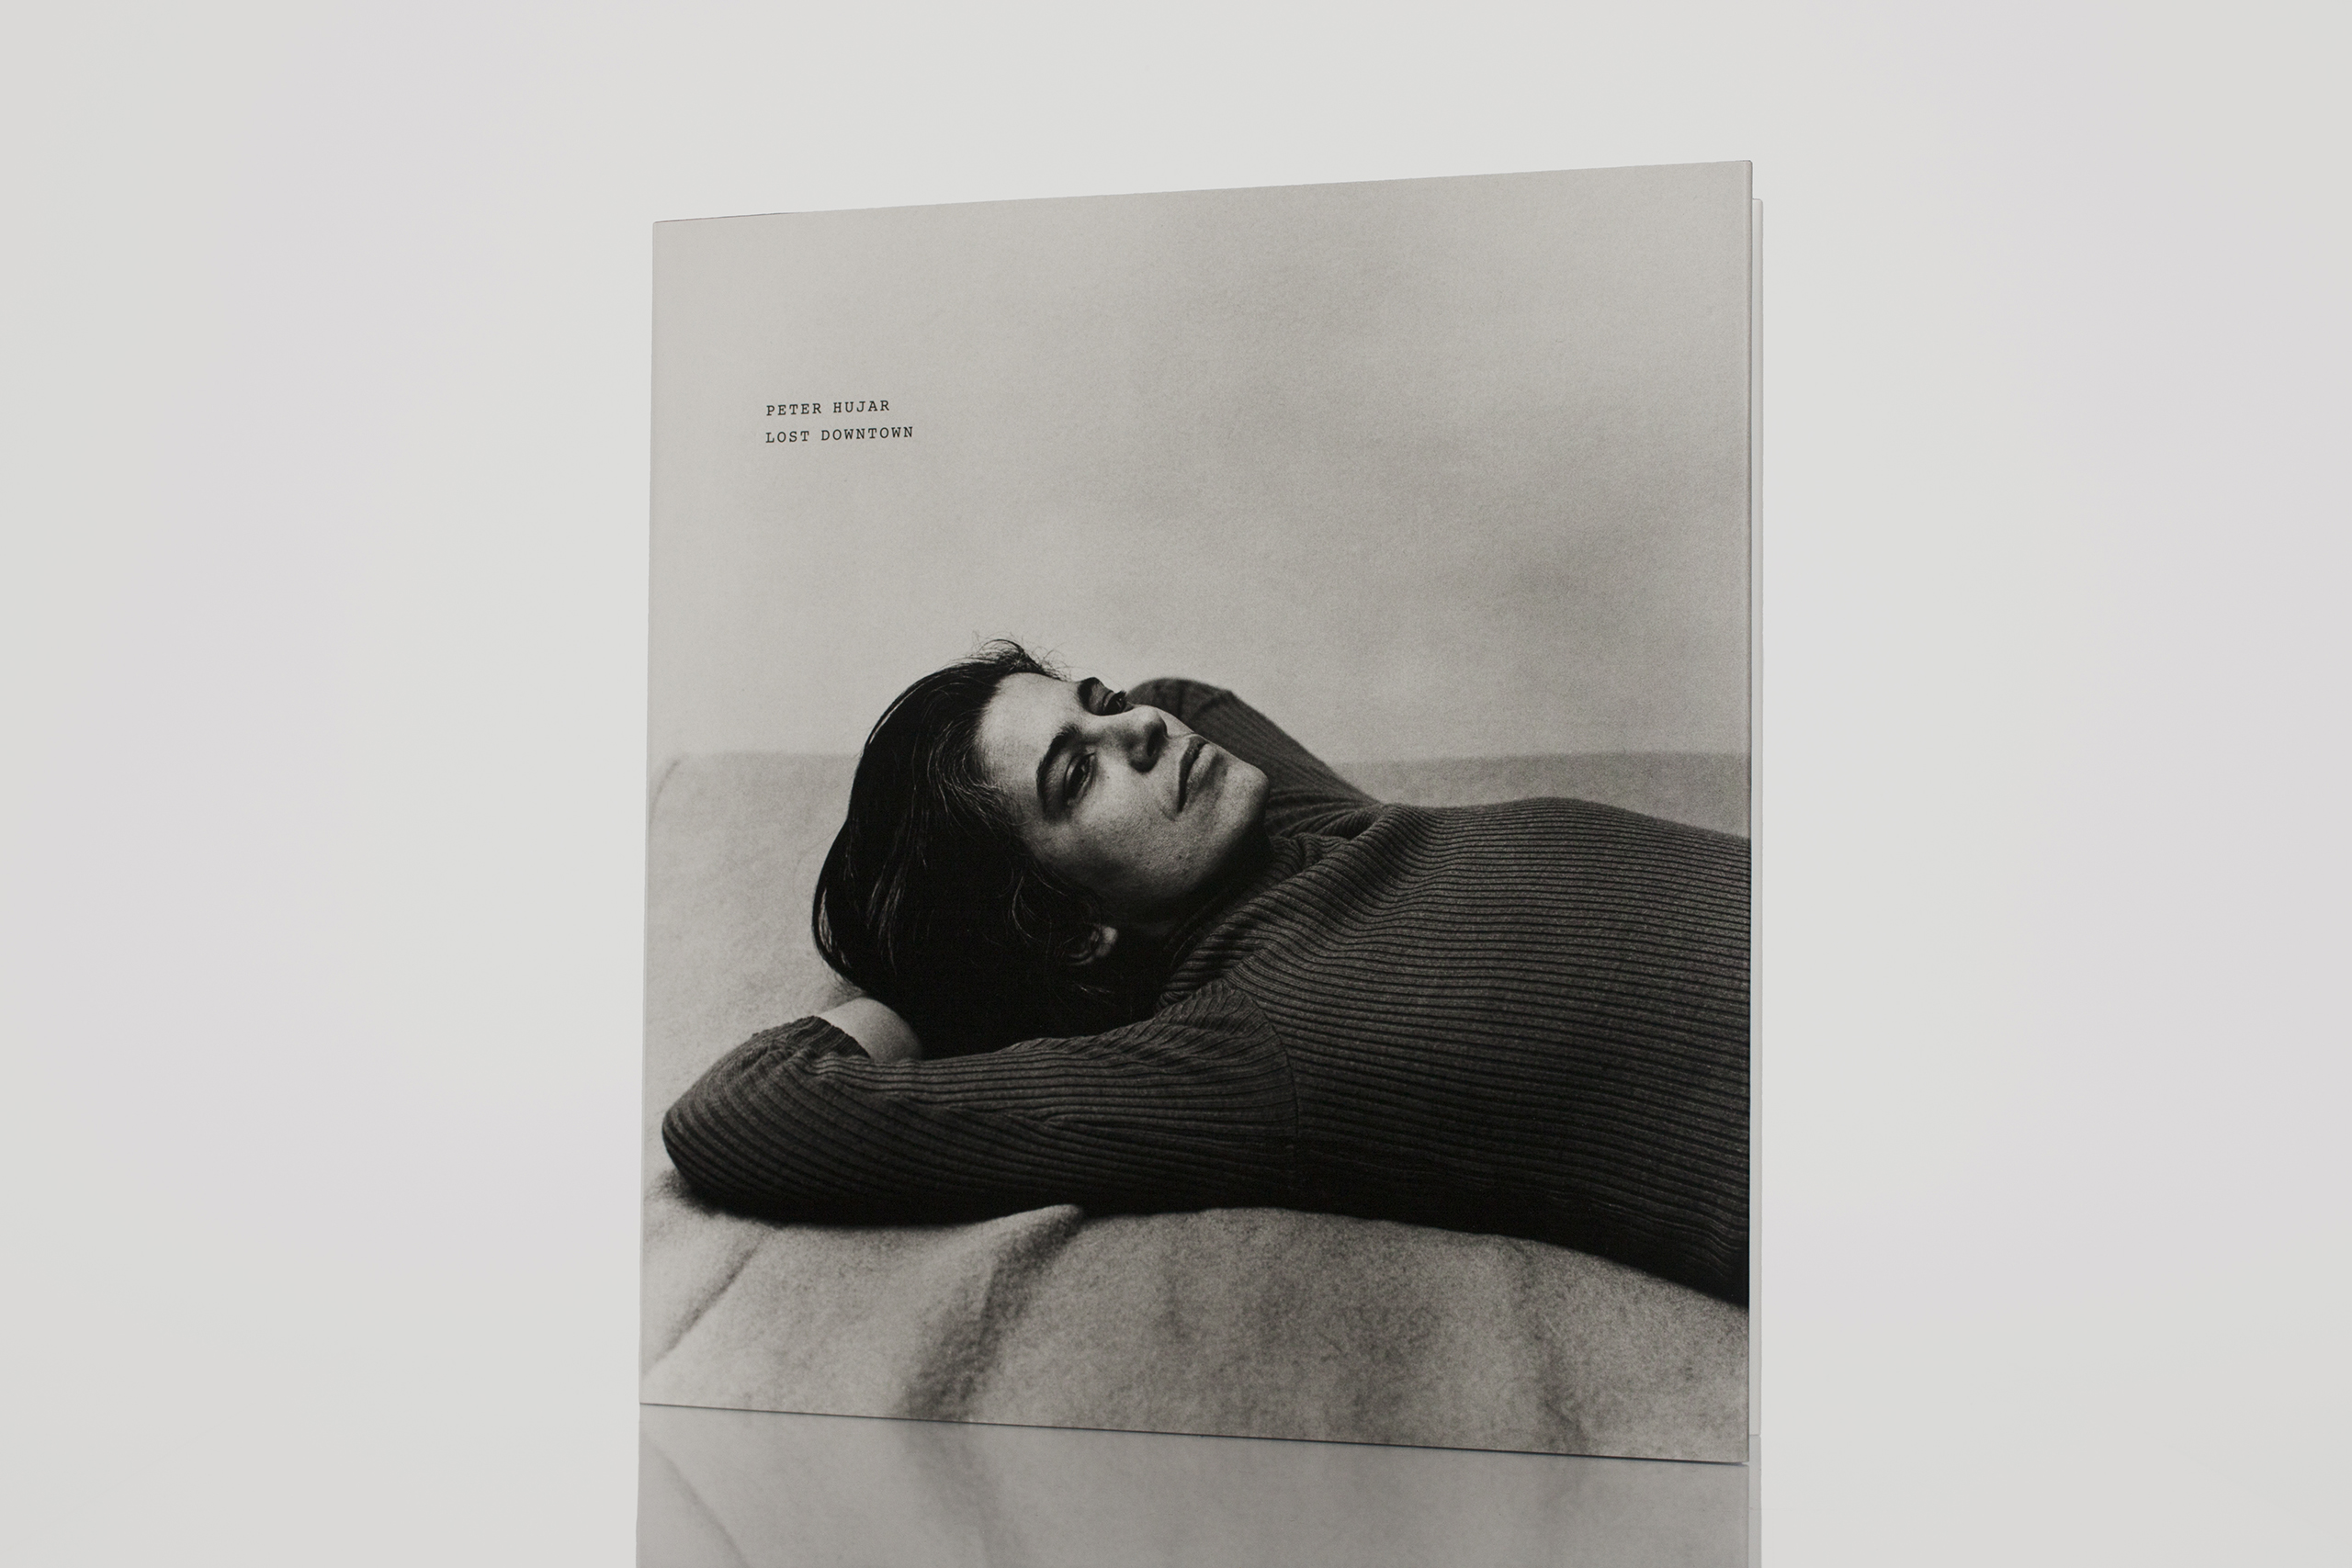 Peter Hujar: Lost Downtown by Peter HujarPublished by Steidl/Pace MacGill